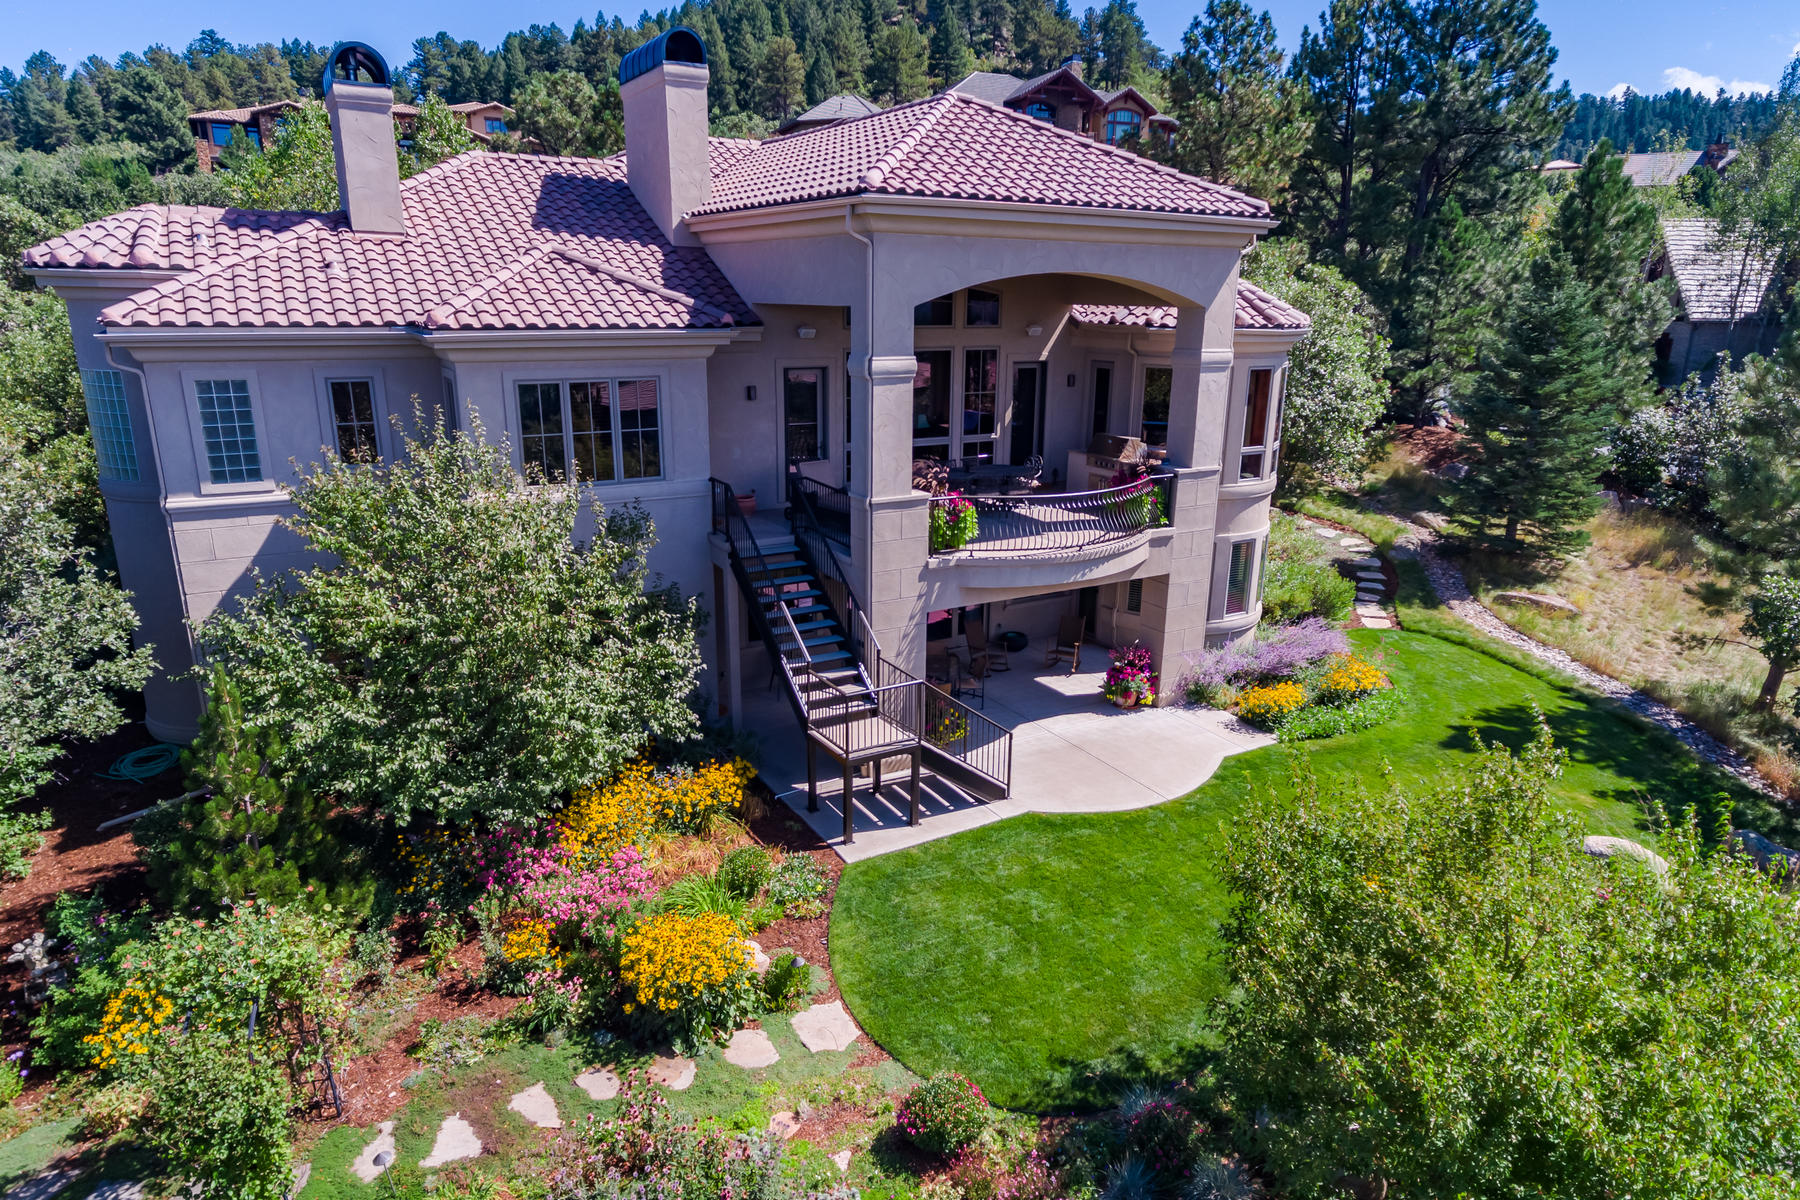 Single Family Home for Active at 1058 Country Club Estates Dr 1058 Country Club Estates Dr Castle Rock, Colorado 80108 United States